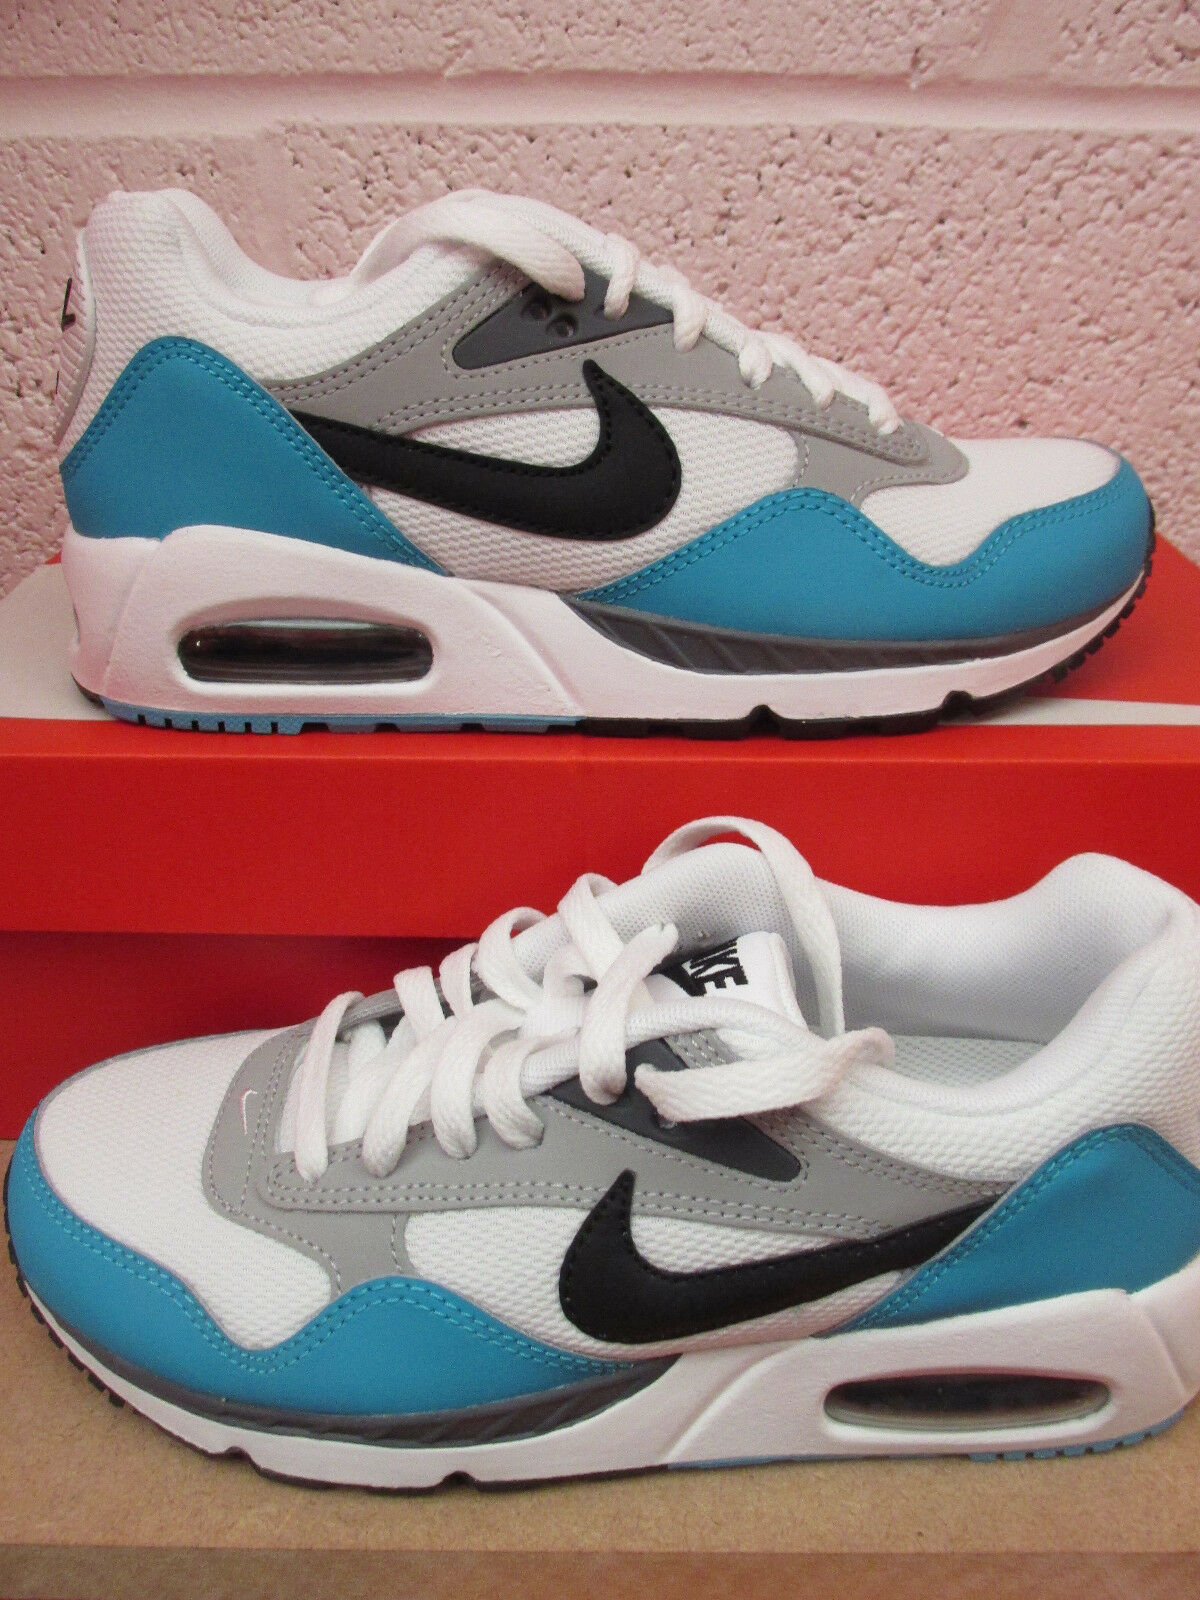 Nike Damenschuhe Air Max Correlate Running Schuhes Trainers 511417 142 Sneakers Schuhes Running 5ee028